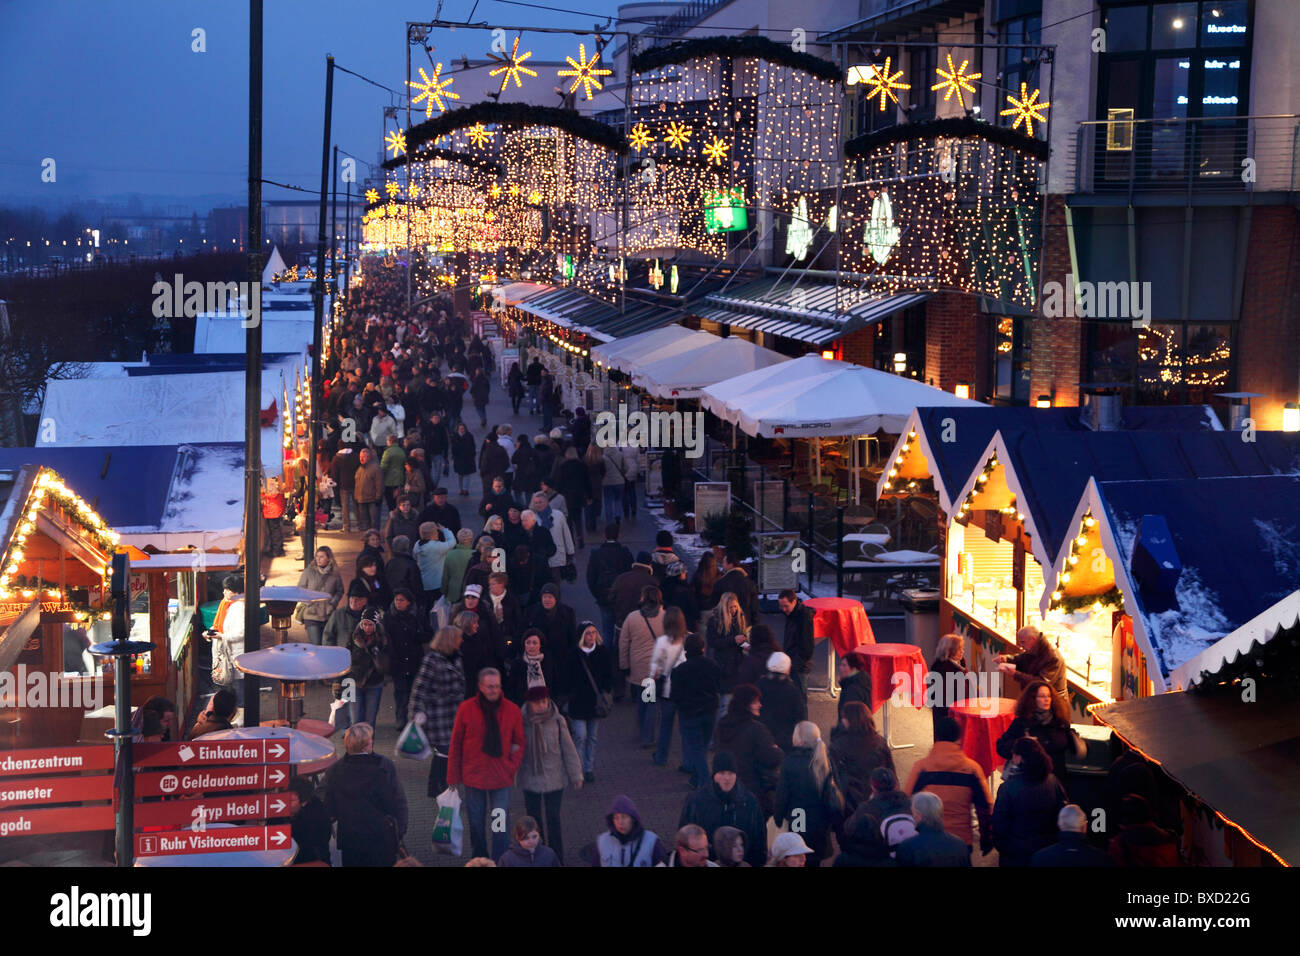 Traditional Christmas market, with many decorated booths, at Centro shopping mall, Oberhausen, Germany. Stock Photo